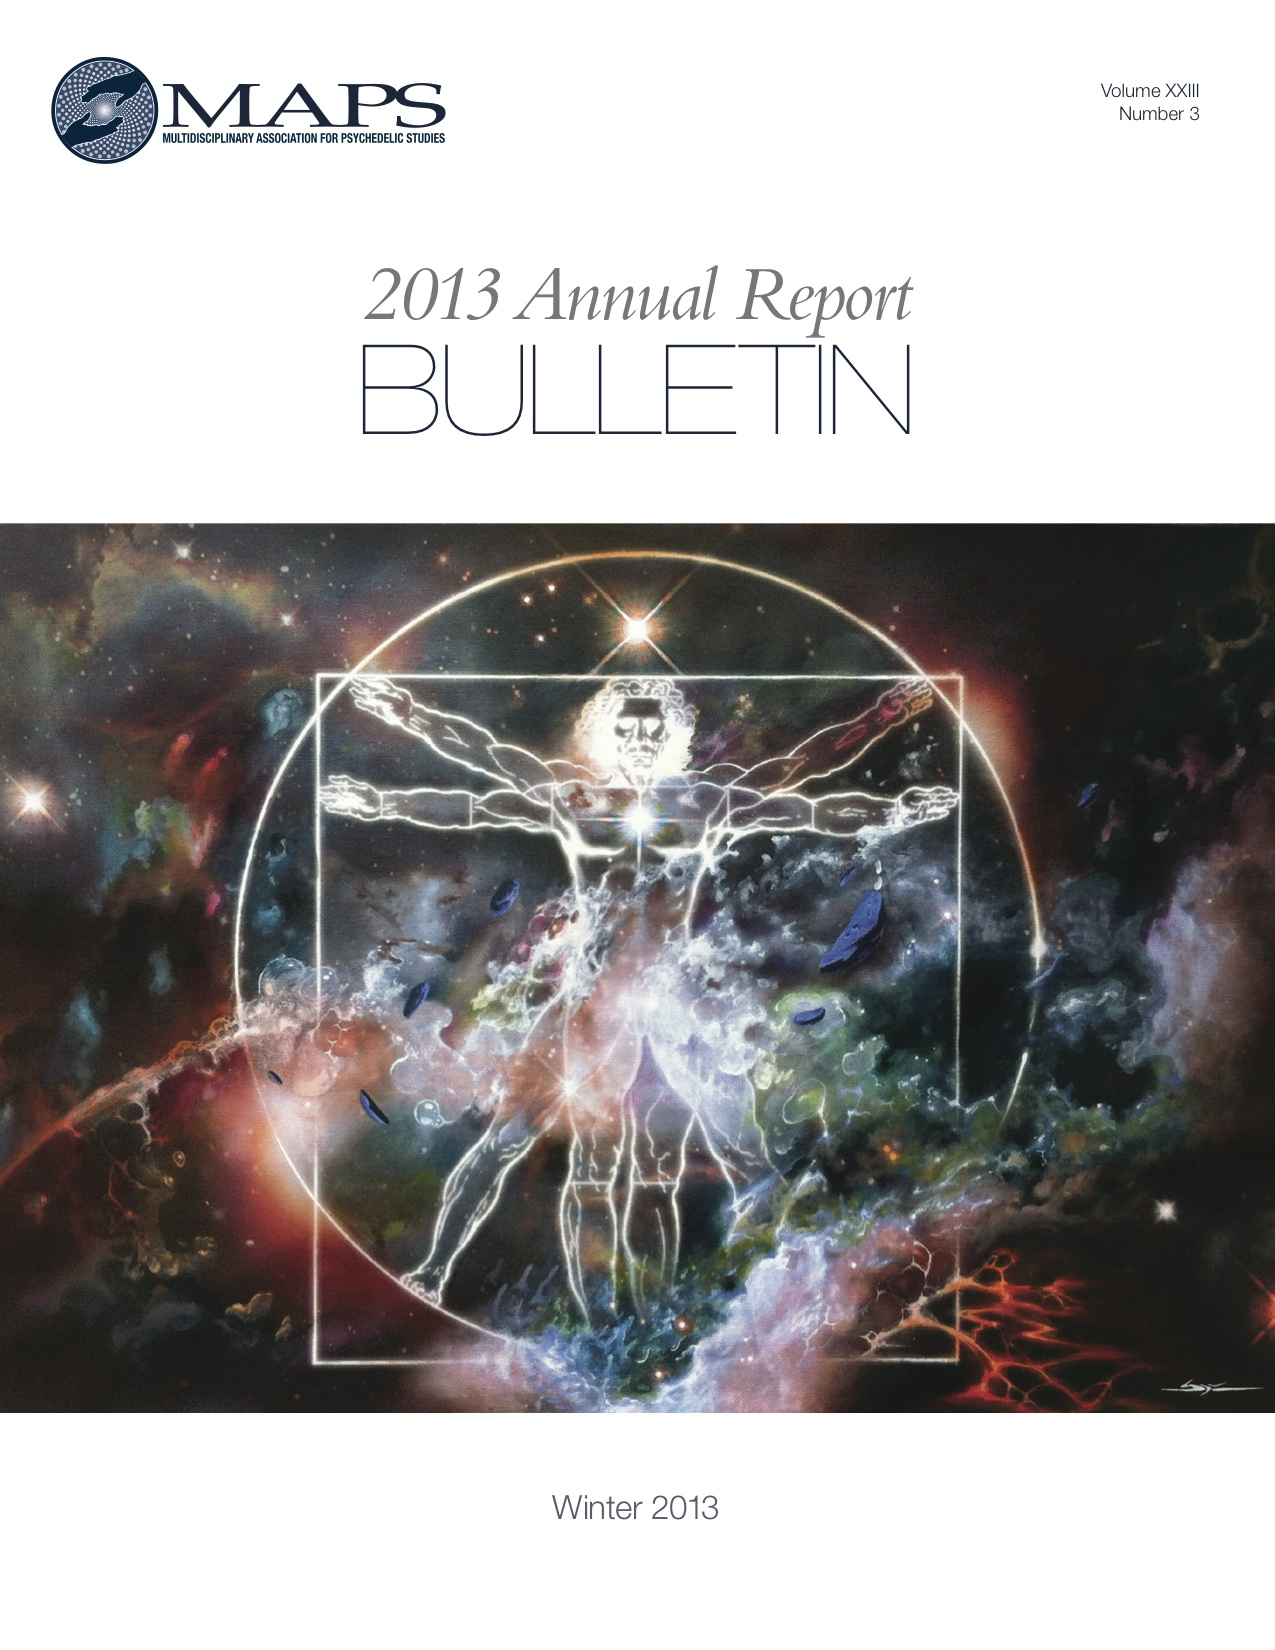 Winter 2013 Vol. 23, No. 3: 2013 Annual Report